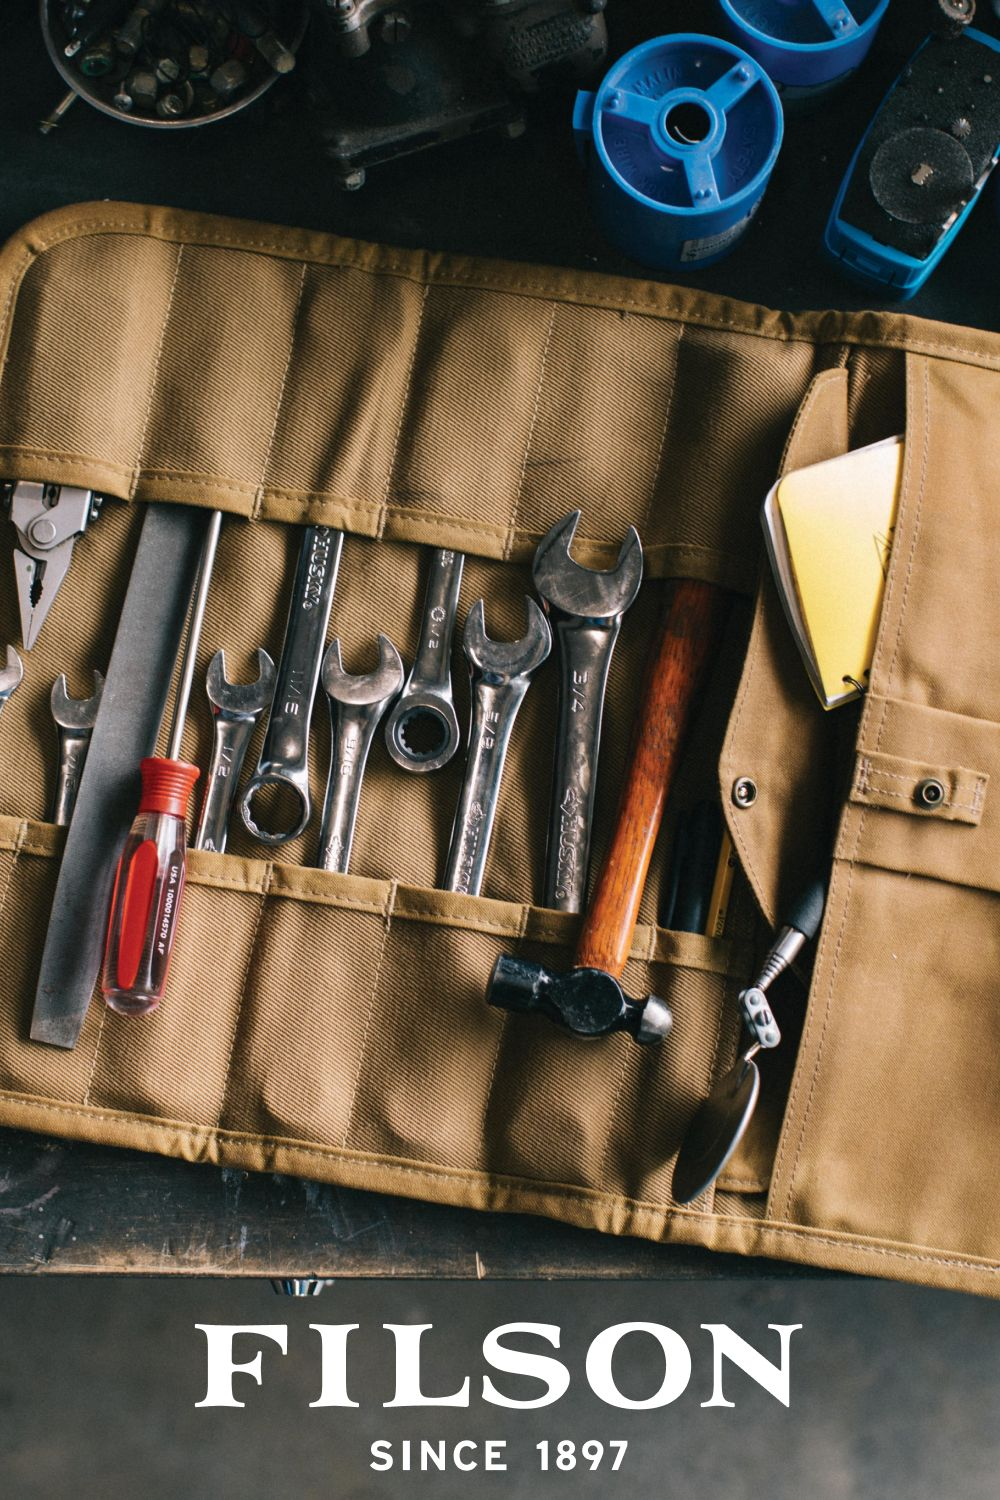 Rugged Twill Tool Roll In 2020 Leather Tool Roll Leather Tool Kits Tooled Leather Bag